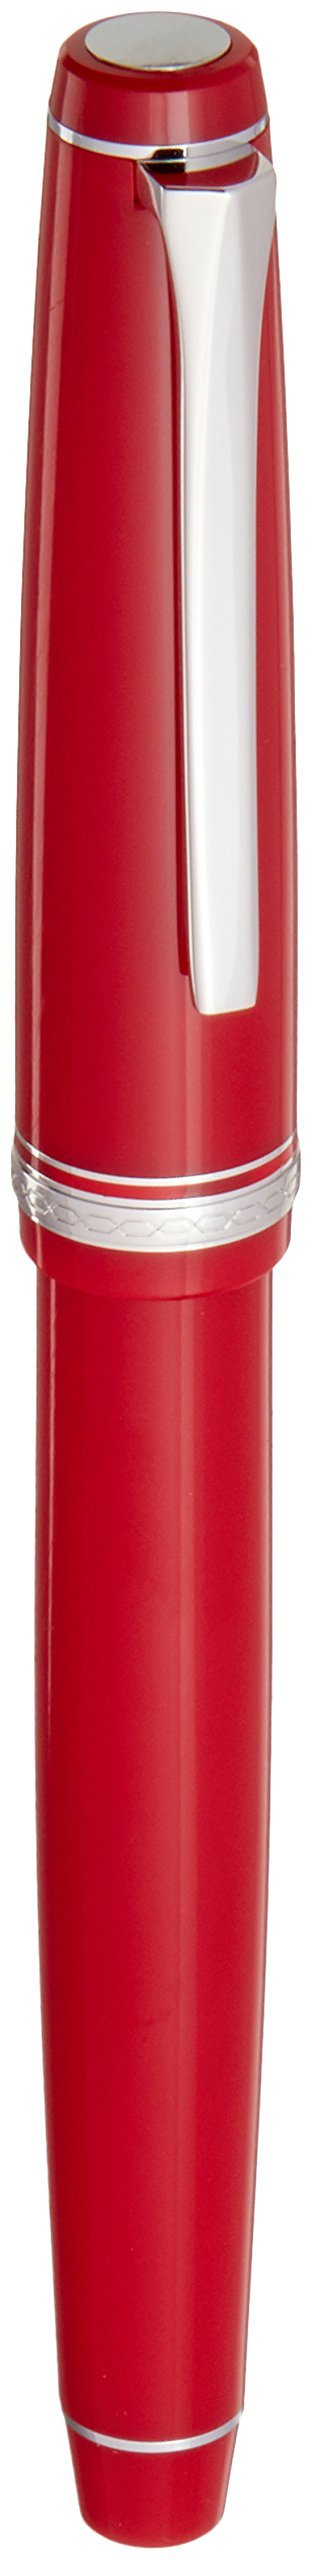 PILOT Falcon Collection Fountain Pen, Red Barrel with Rhodium Accents, Soft Broad Nib, Blue Ink (71623)